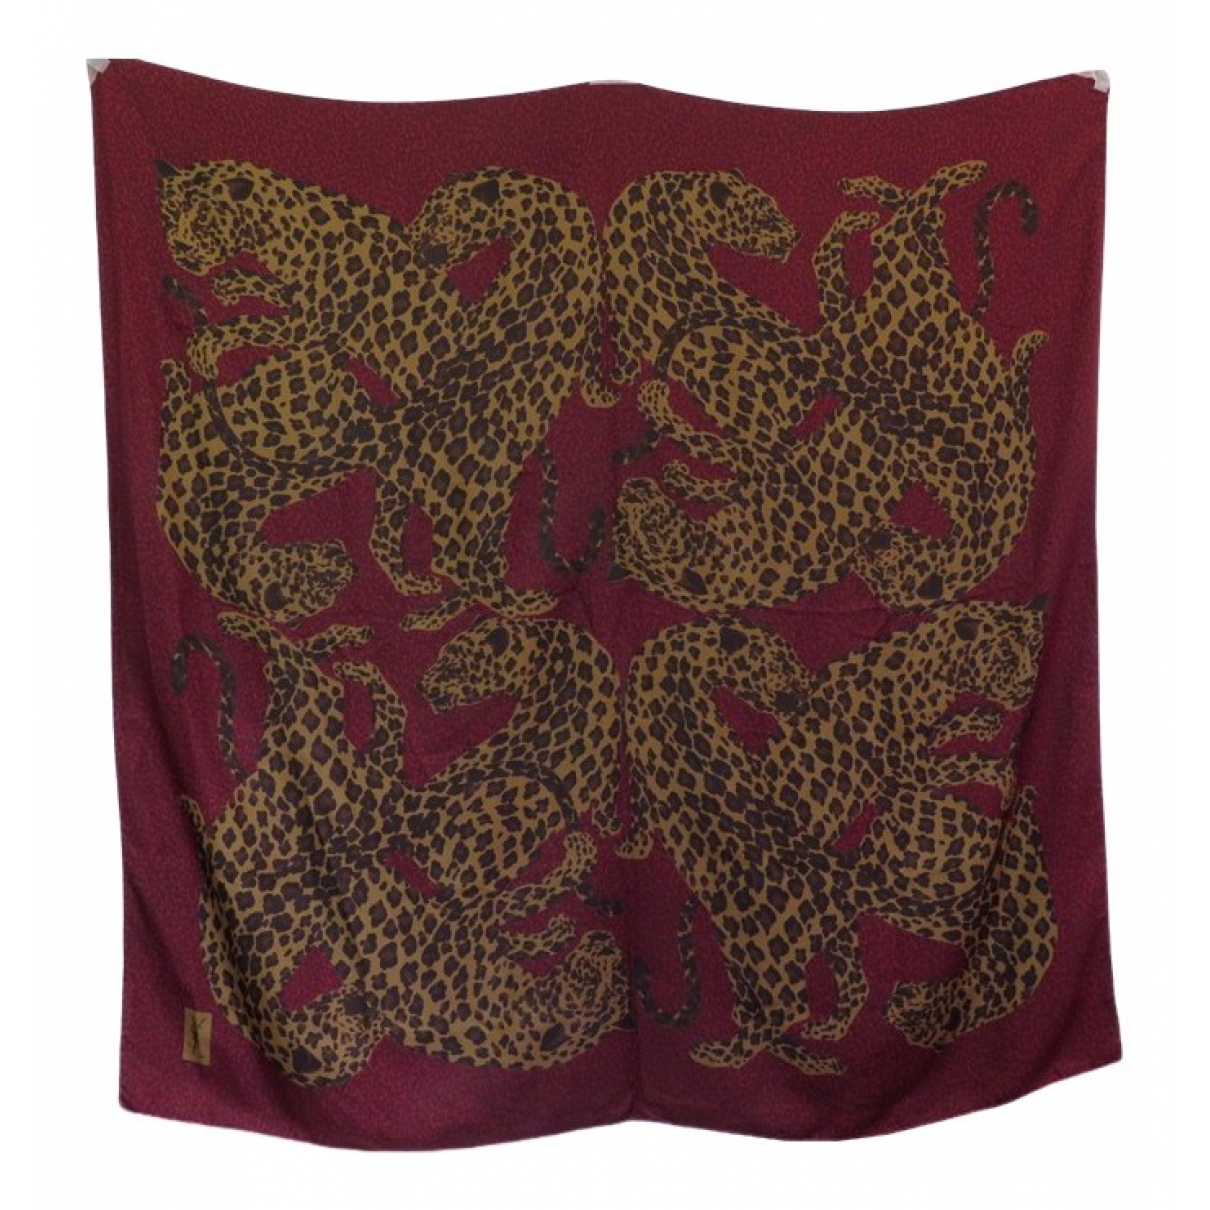 Yves Saint Laurent \N Burgundy Silk scarf for Women \N